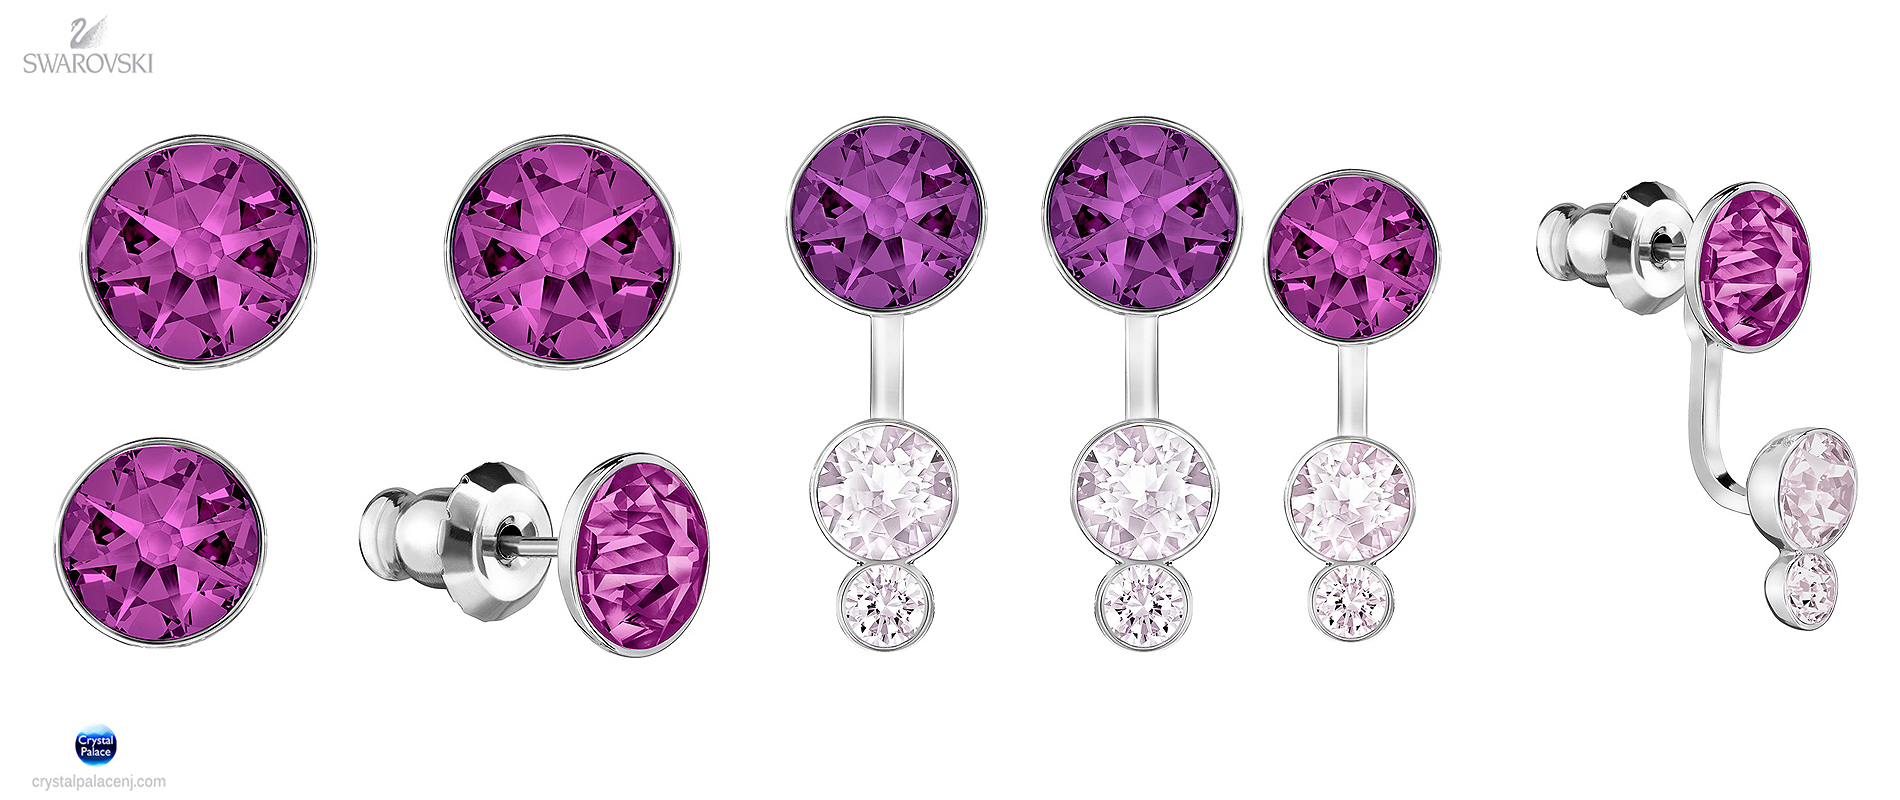 731006e831d28 5201100 Swarovski Jewelry Slake Dot Pierced Earring Jackets purple